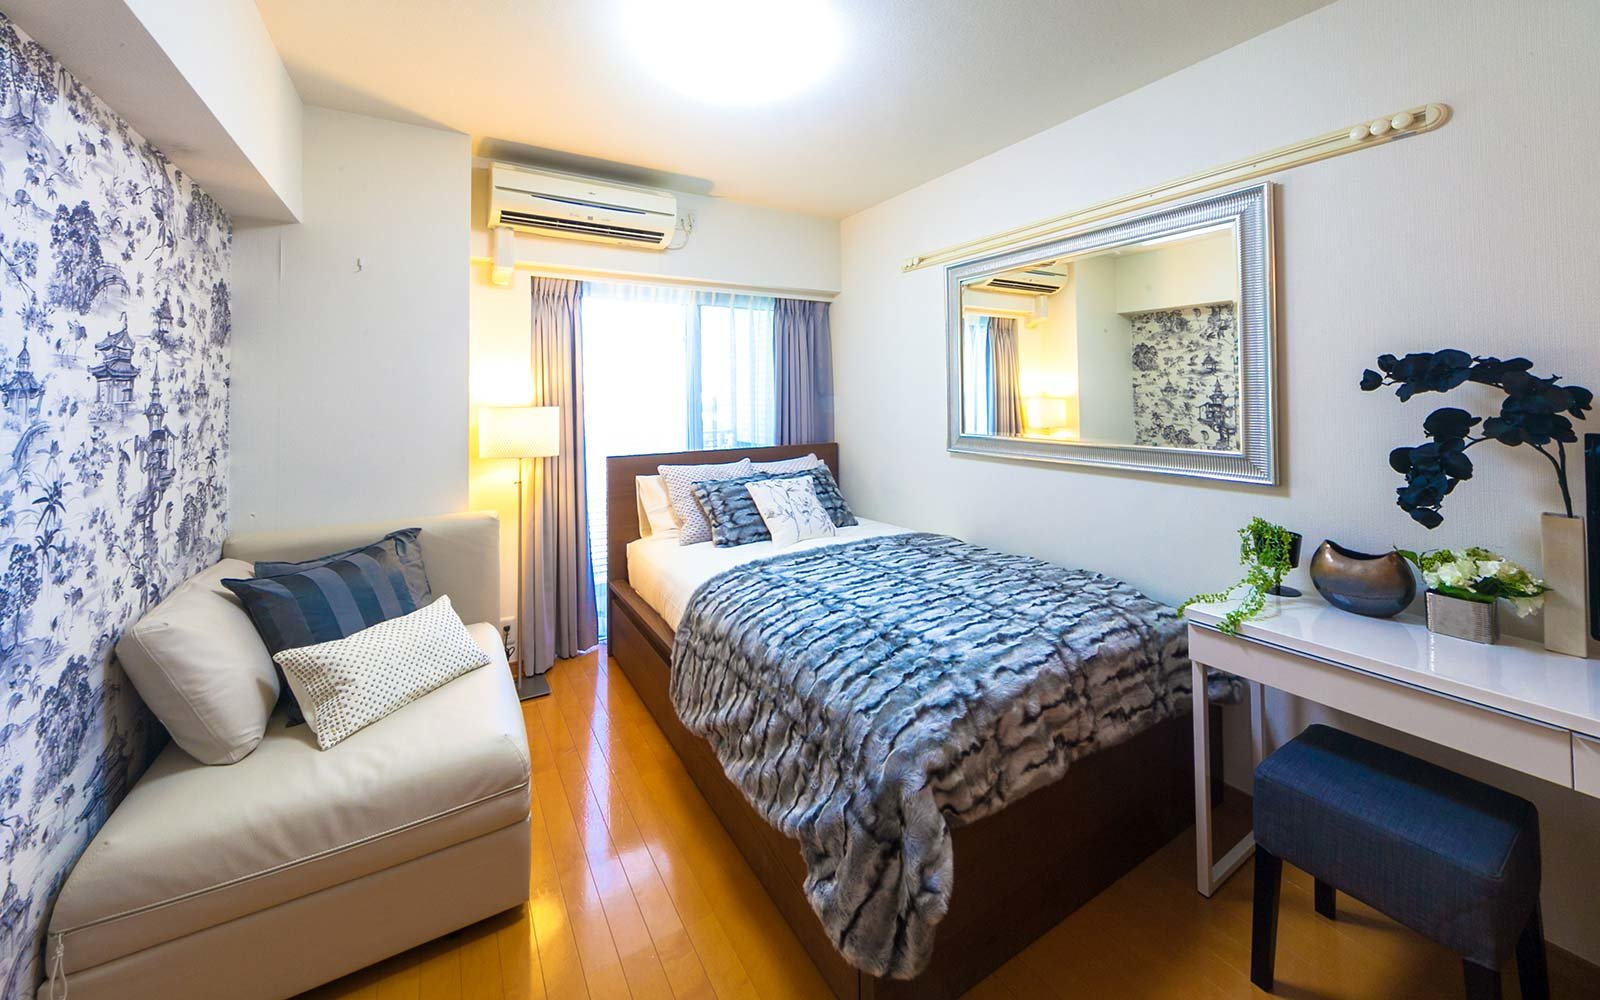 Tokyo Japan Vacation Holiday Apartment Rental Airbnb Roppongi Station